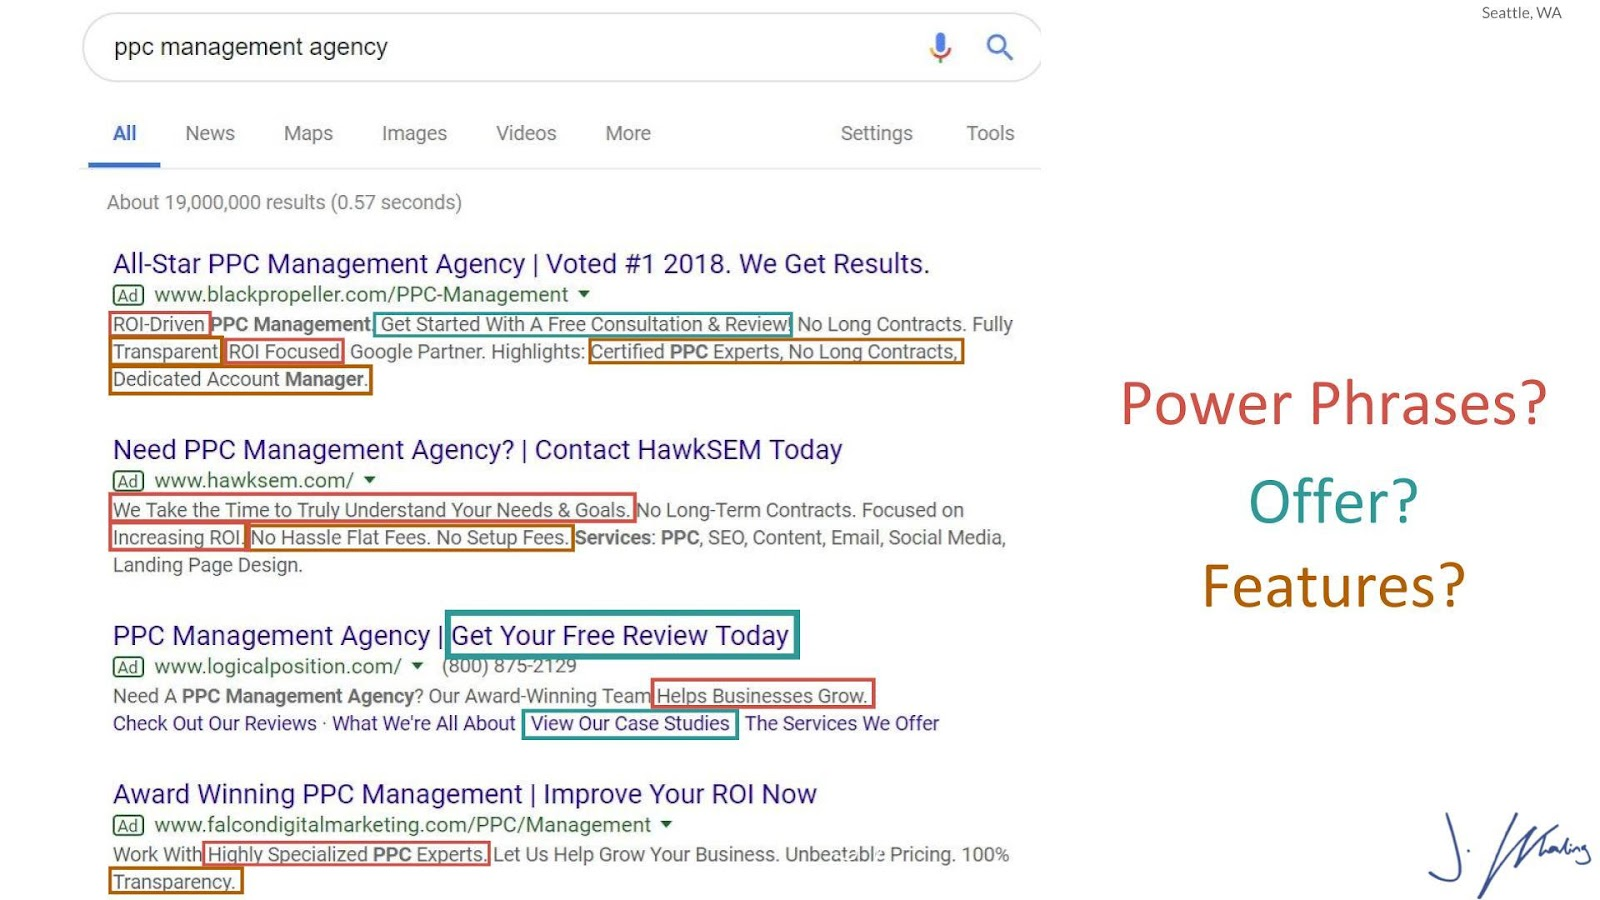 C:\Users\lenovo\Documents\ACT Marketing\Downloads from Slides\Blog version M122 - How To Setup Google Ads Campaign.jpg